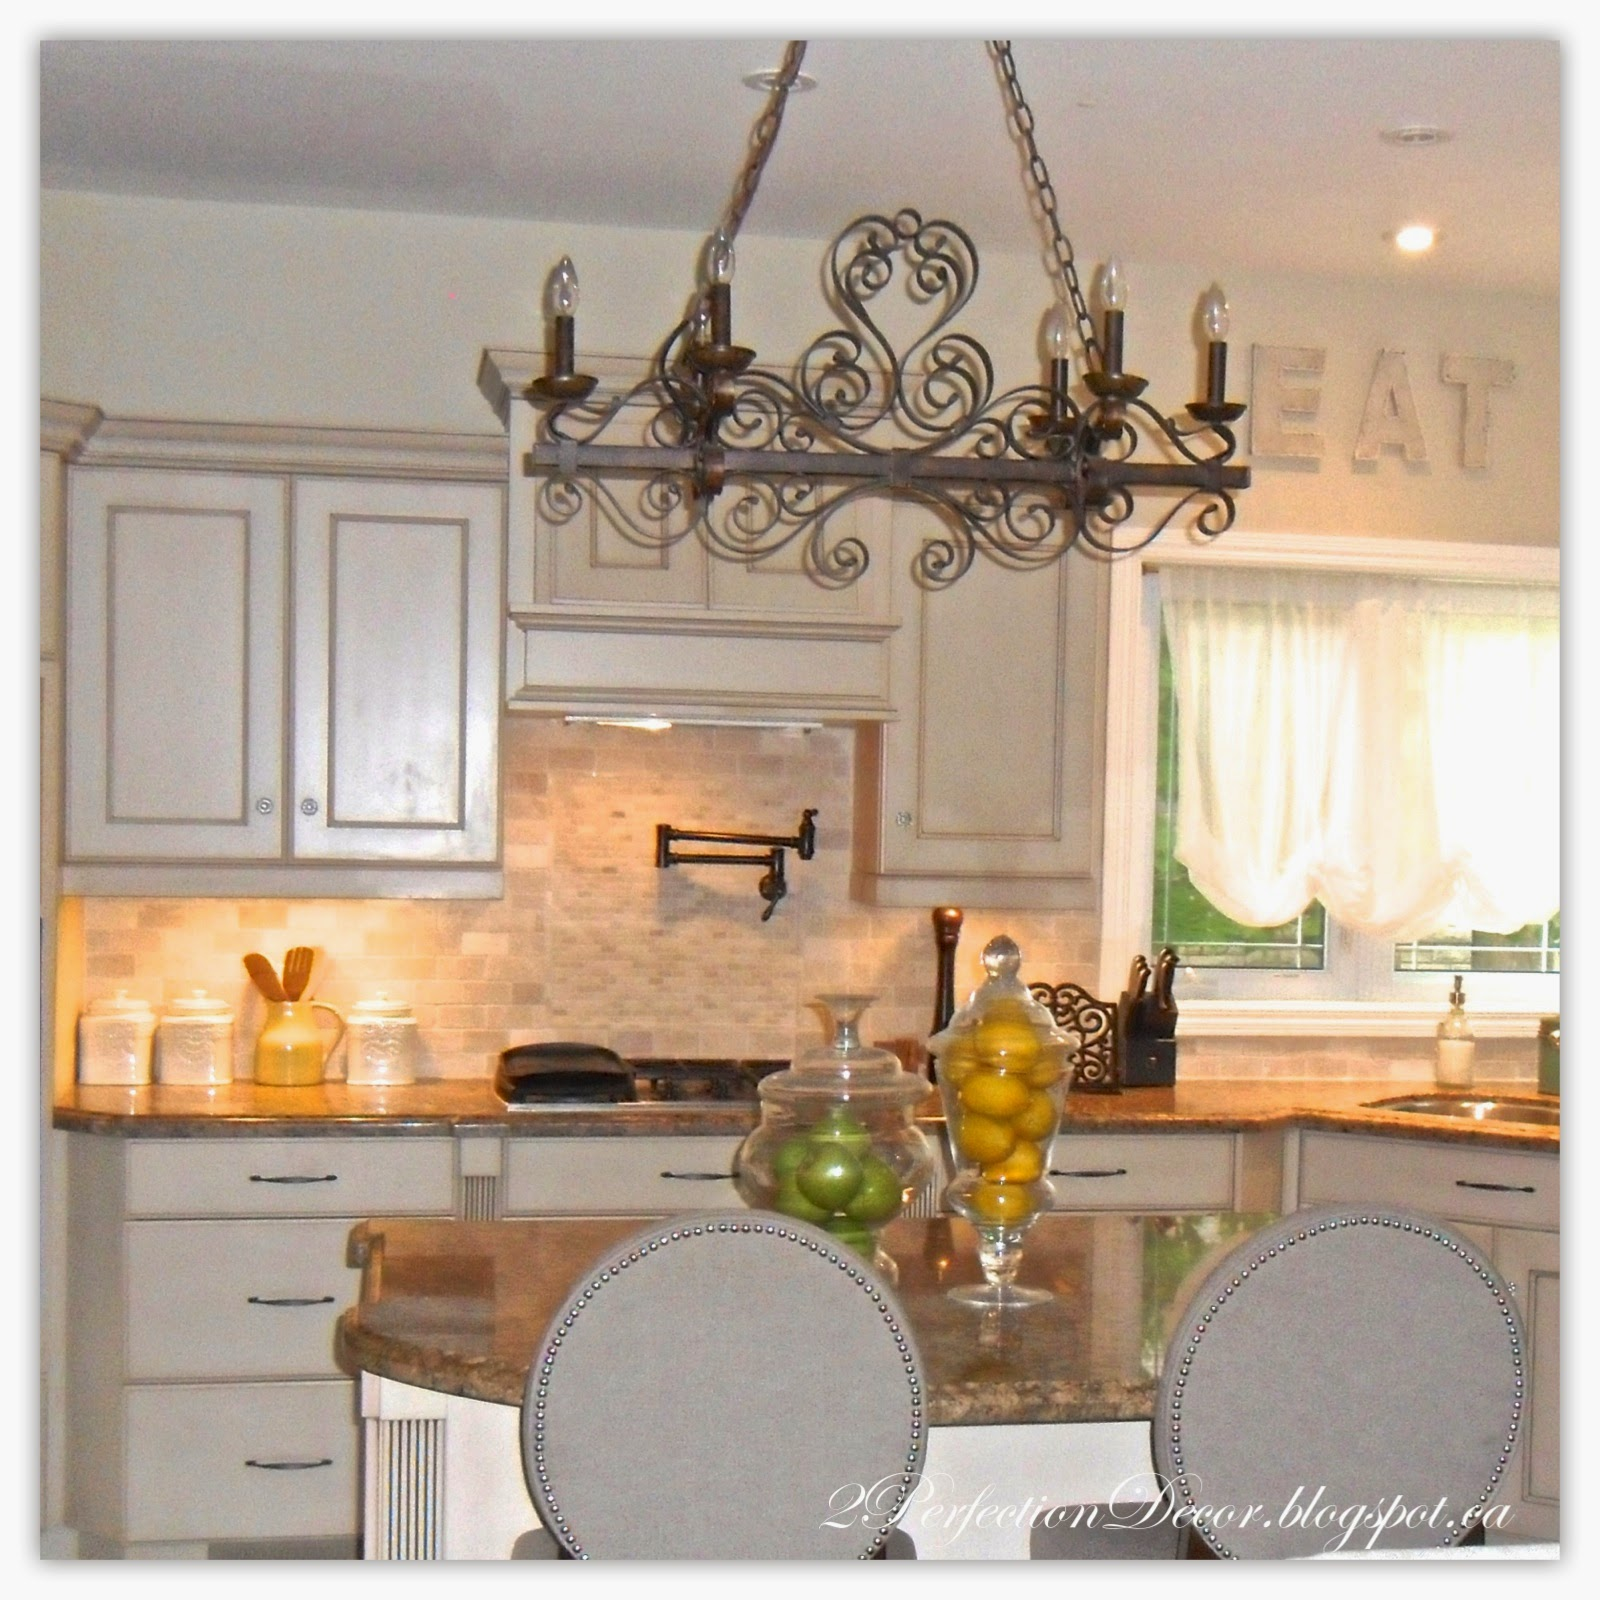 French Country Kitchen Accessories: 2Perfection Decor: French Country Kitchen Reveal